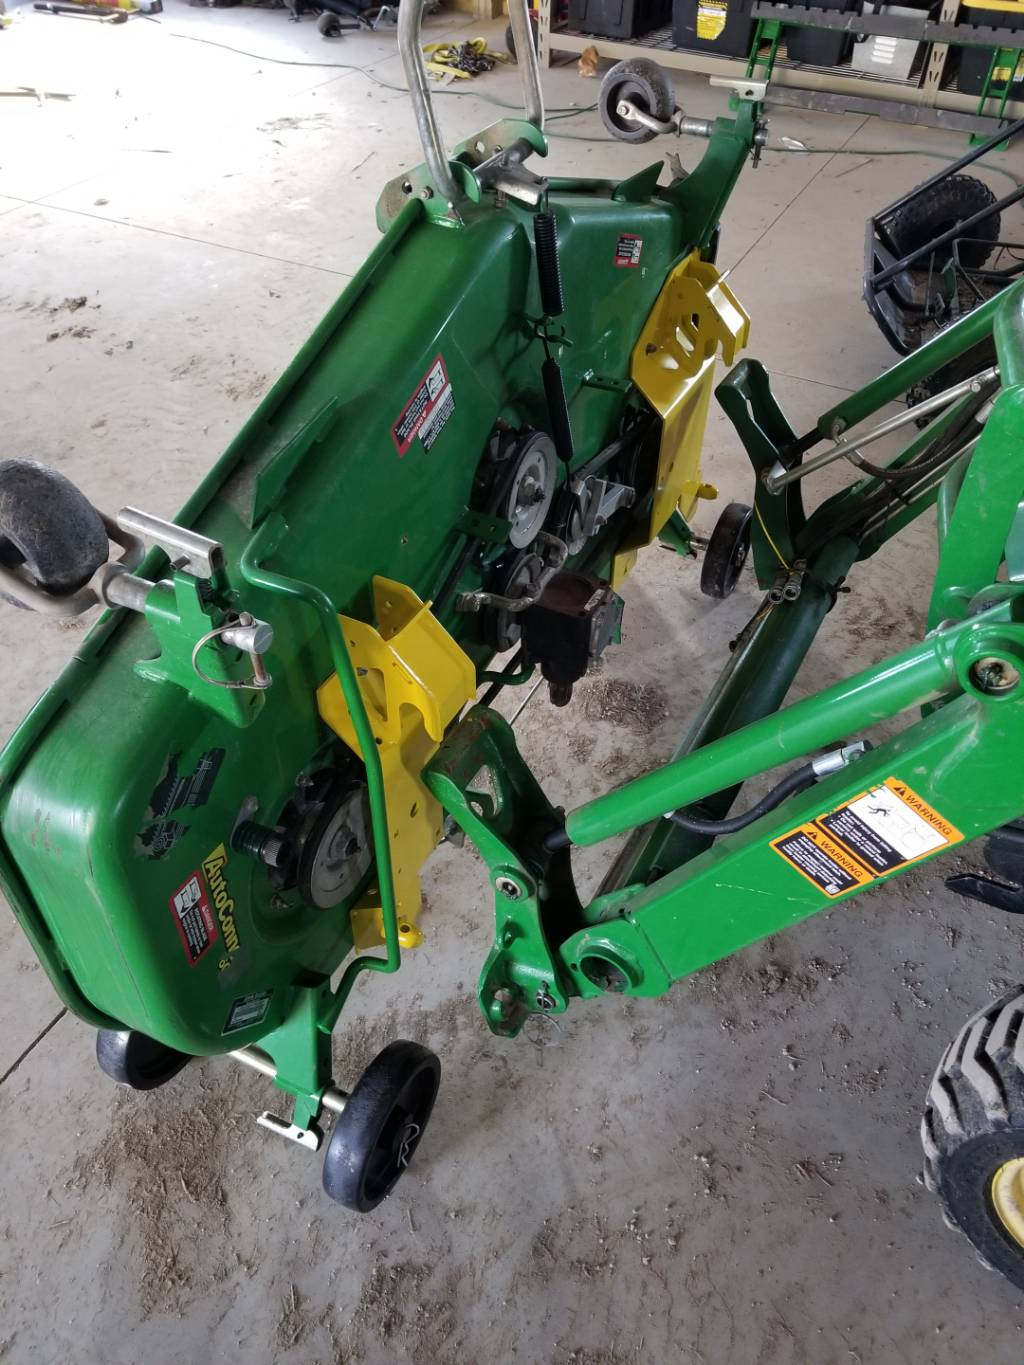 Greenpartstore John Deere Parts And More Parts For >> New John Deere Load N Go Brackets Bxx10241 For 60d 7 Iron